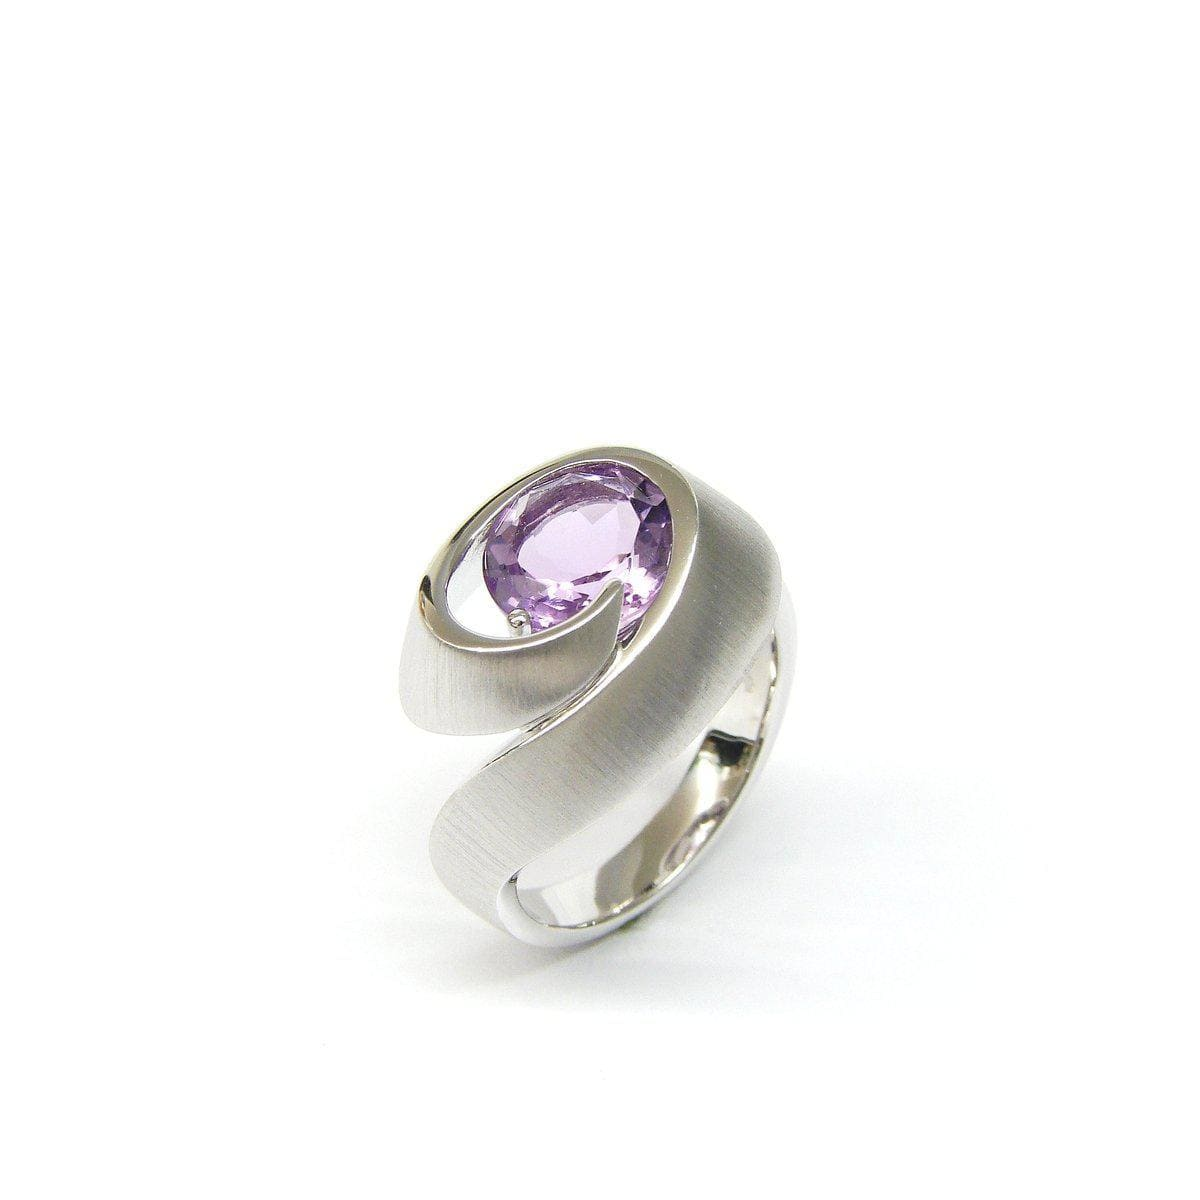 Sterling Silver Amethyst Ring - 42/84835-AM-Breuning-Renee Taylor Gallery